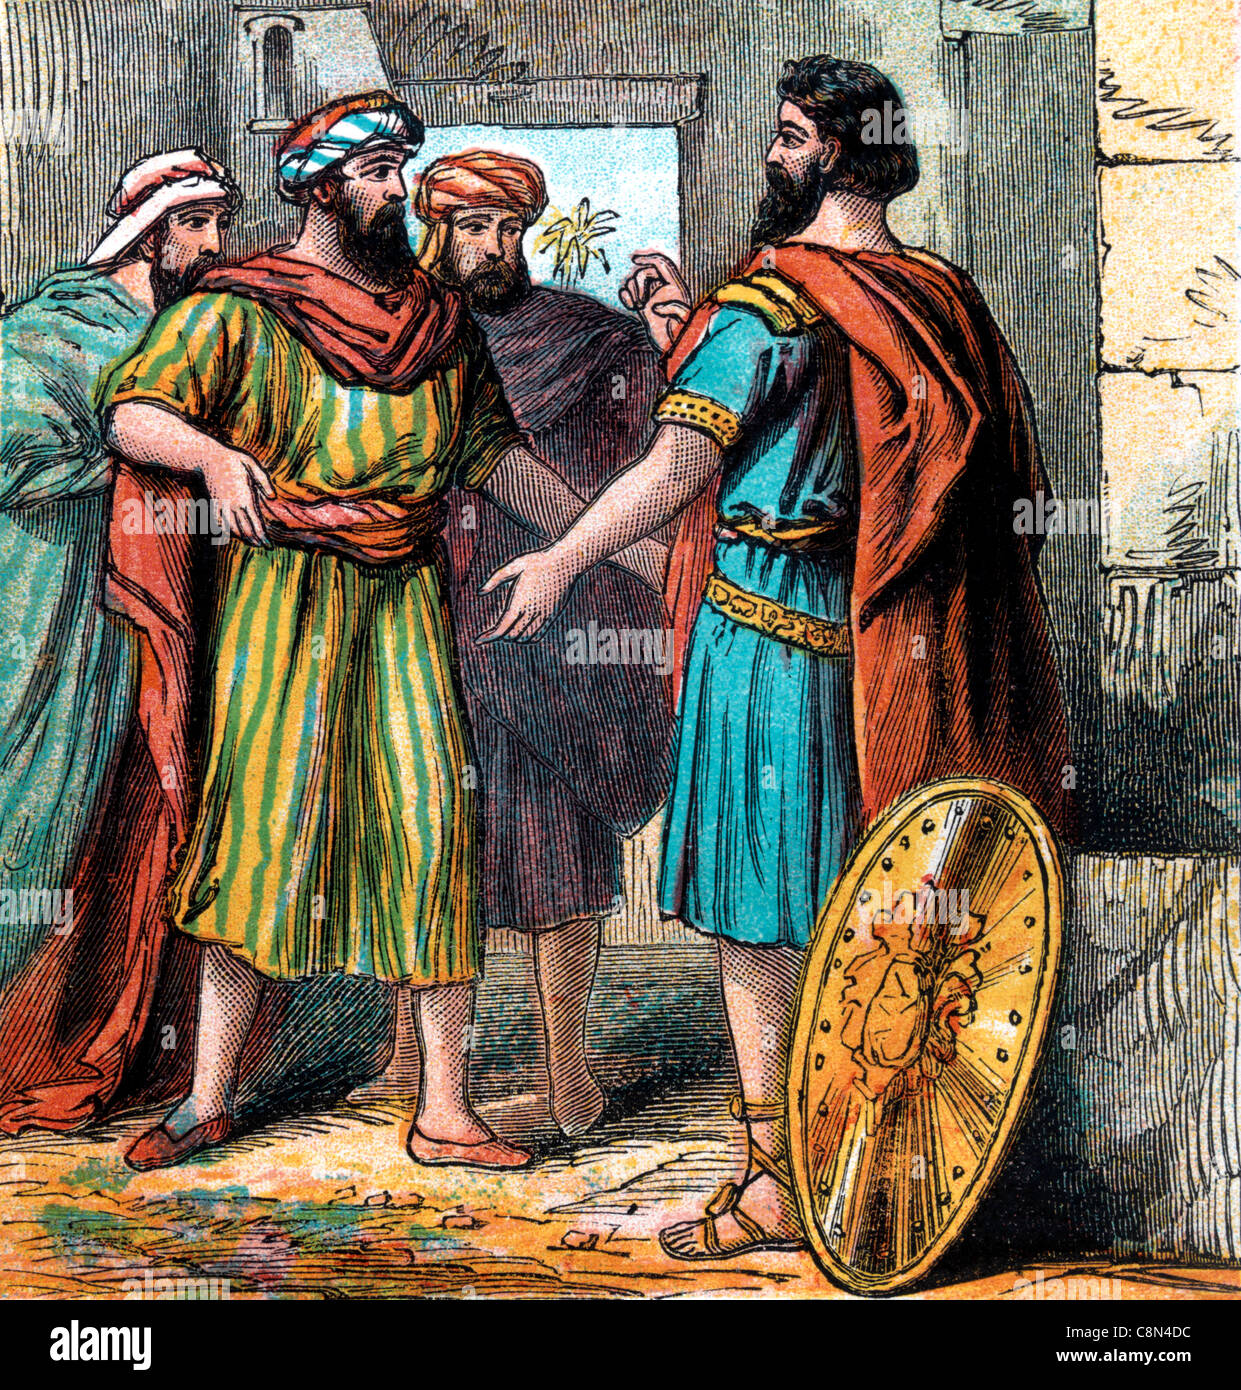 Bible Stories- Illustration Of Gideon's Countrymen Offering Him To Be King - Stock Image